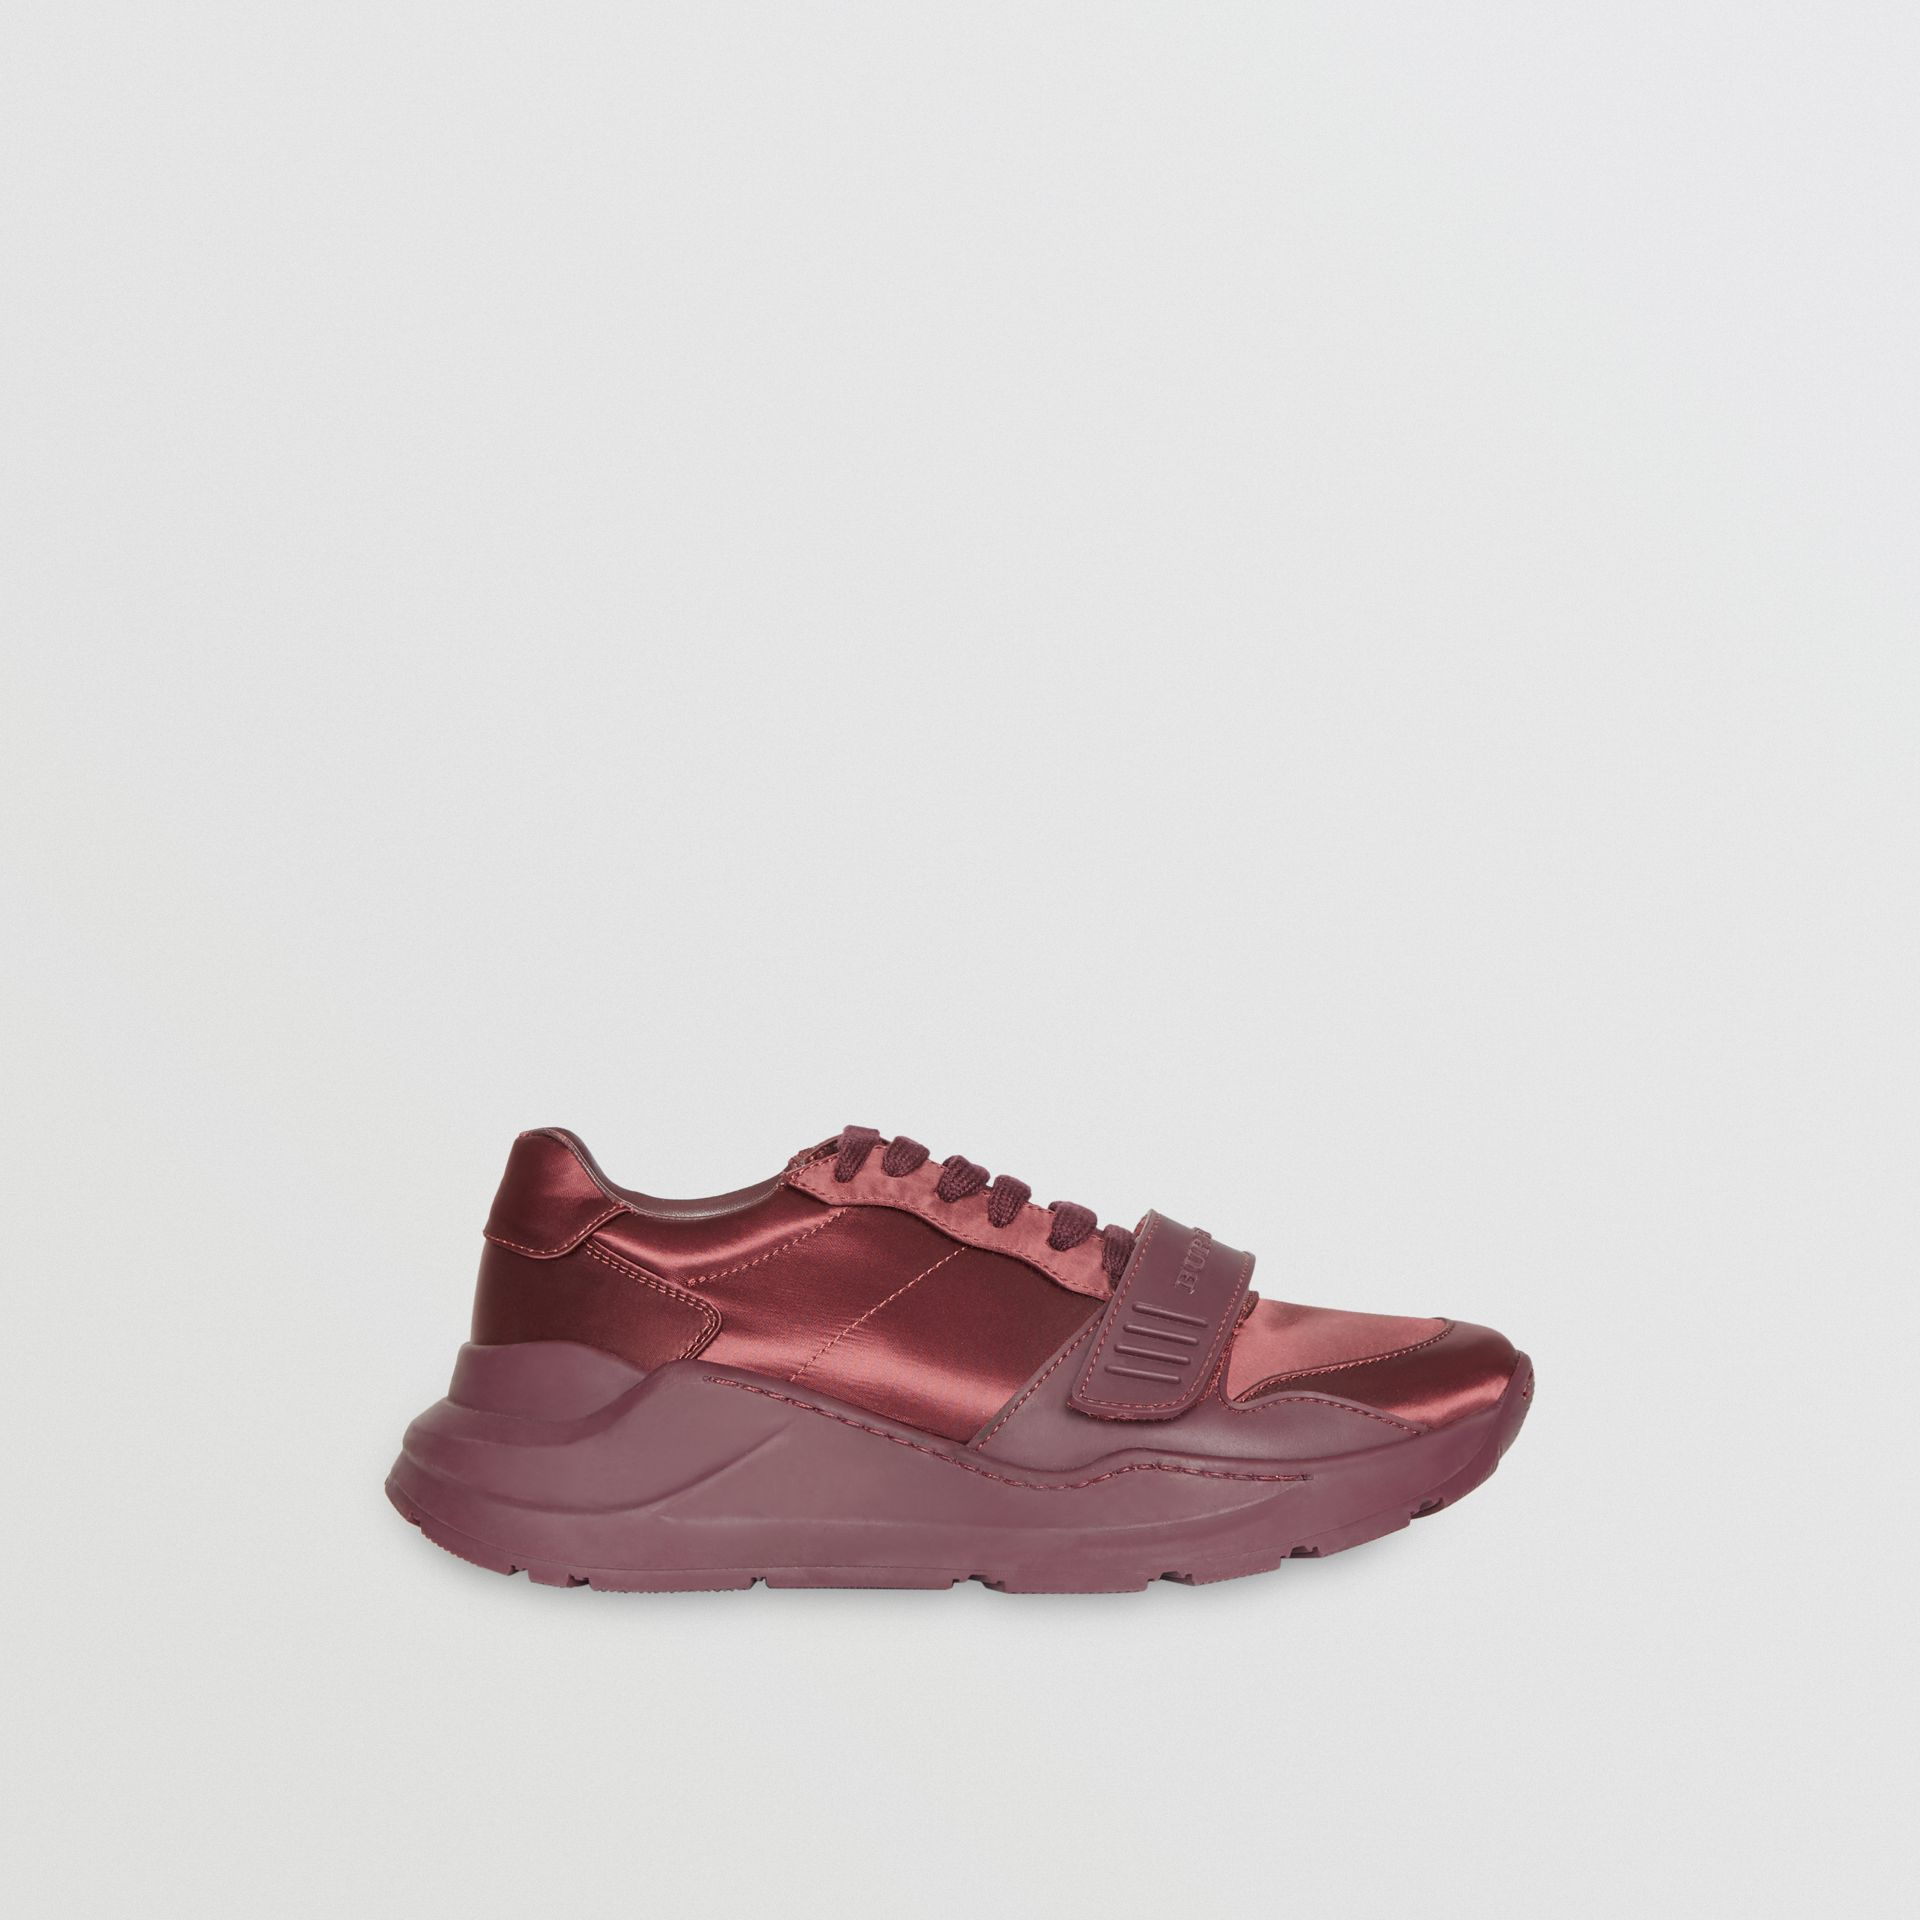 Satin Sneakers in Claret - Women | Burberry United Kingdom - gallery image 5